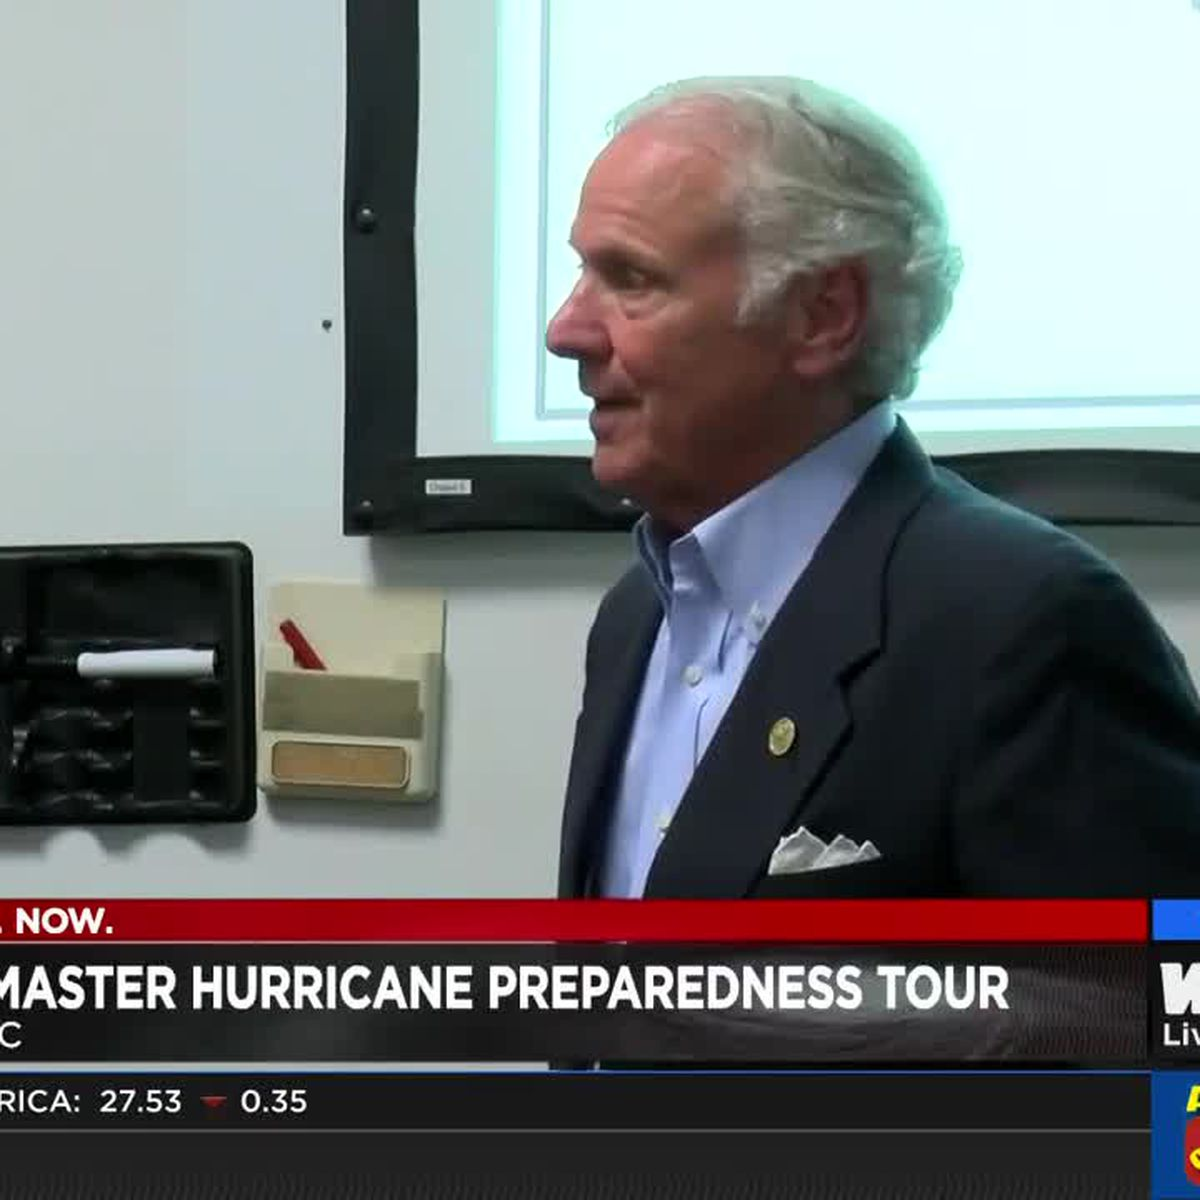 SC Gov. Henry McMaster wrapping up hurricane preparedness tour